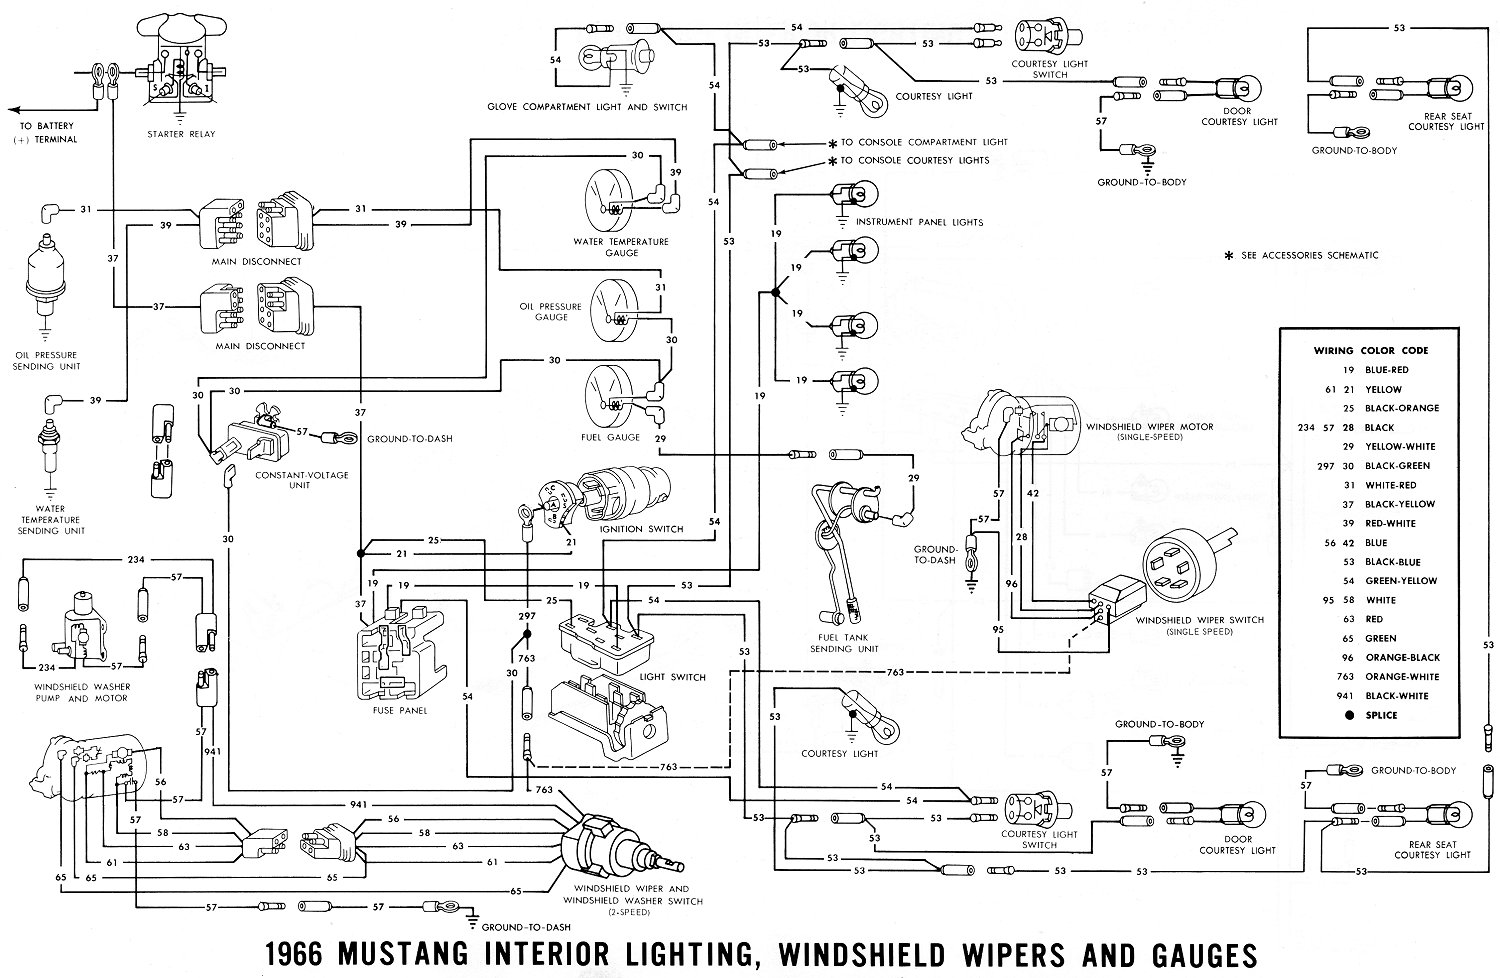 hight resolution of 1966 mustang dash wiring diagram trusted wiring diagram 97 ford mustang radio wiring diagram 1966 mustang dash wiring diagram 1965 under